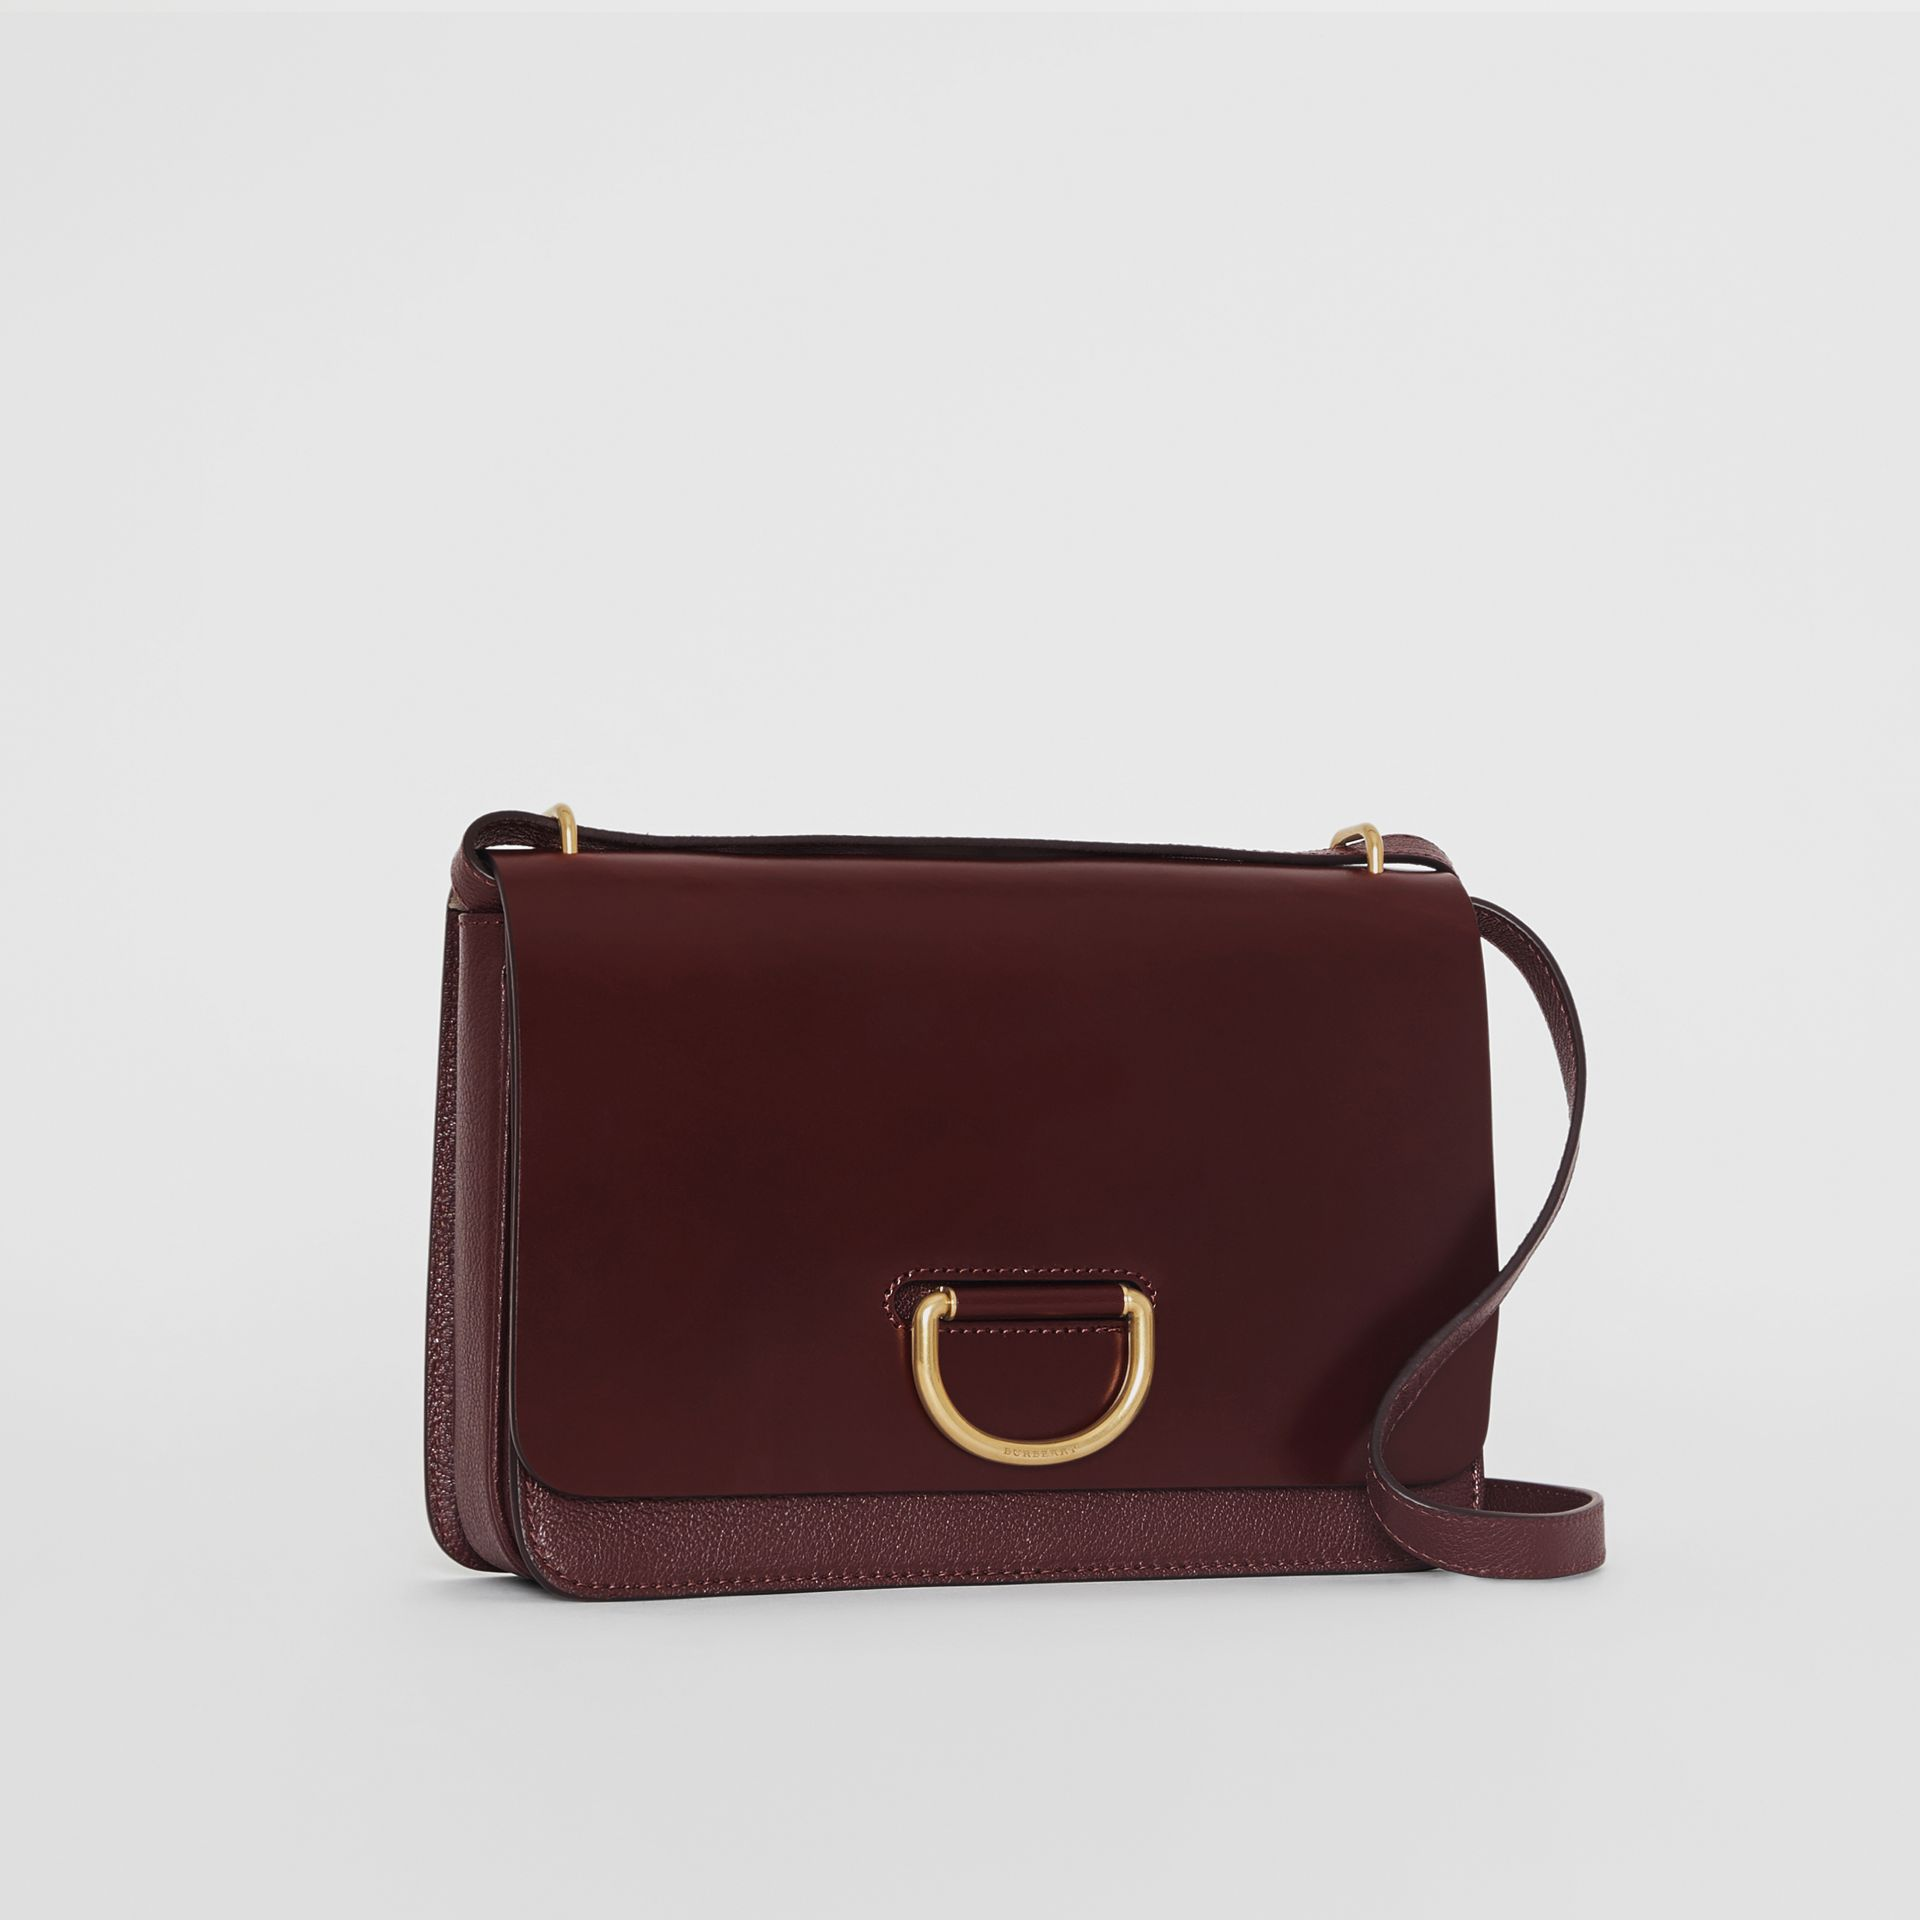 Borsa The D-ring media in pelle (Rosso Violetto Intenso) - Donna | Burberry - immagine della galleria 6